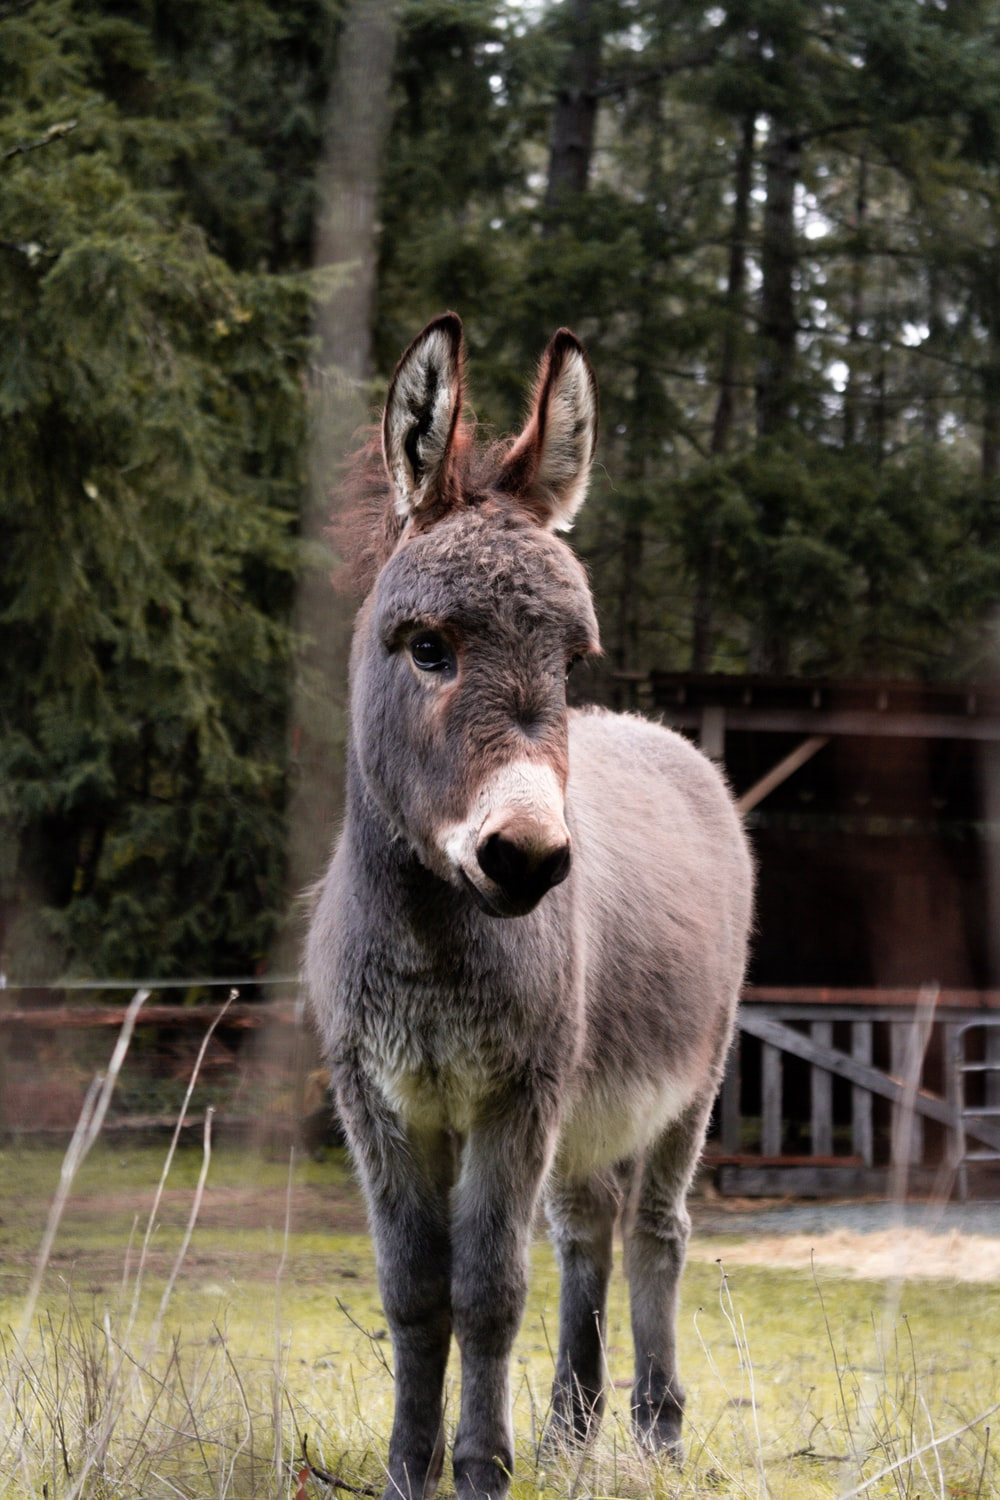 gray donkey on green grass field during daytime